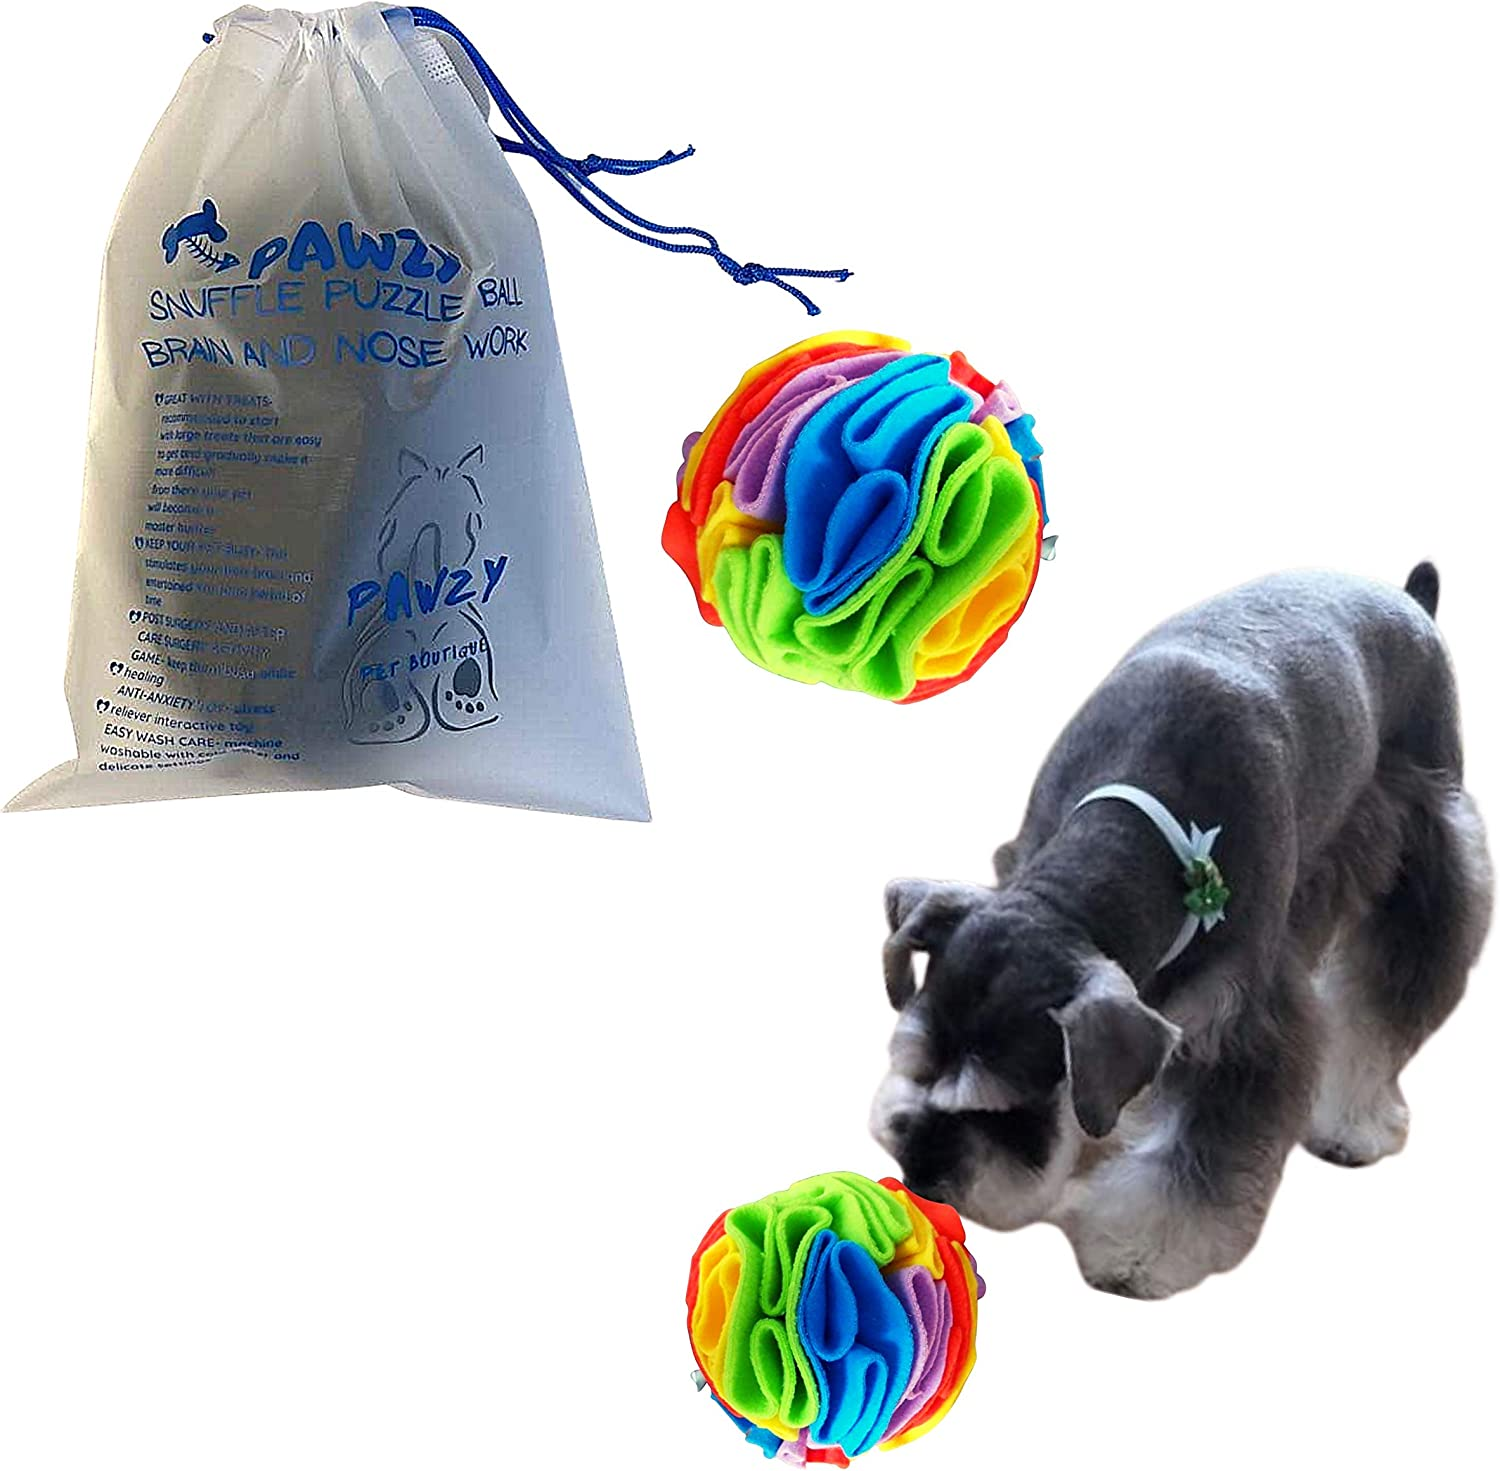 PAWZY Snuffle Treat Ball, Treat Dispensing Training Toy, Foraging Dog Toy, Cat Toy, Dog Play Enrichment, Slow Feeding Ball, Slow Feeder Interactive Toy for Dog and cat